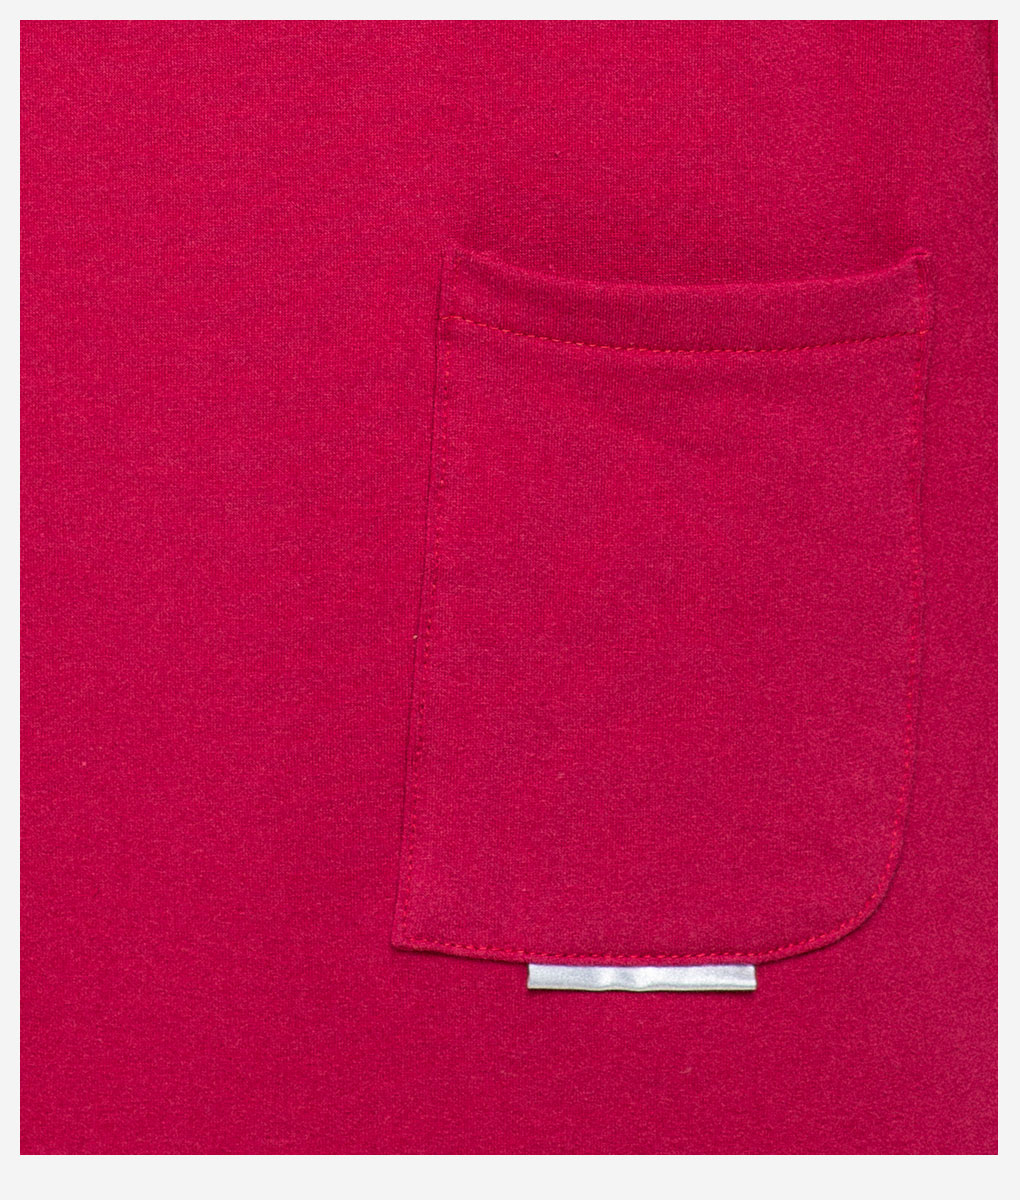 casual-cycling-clothing-jacket-garnet-canale-neck-pocket-detail